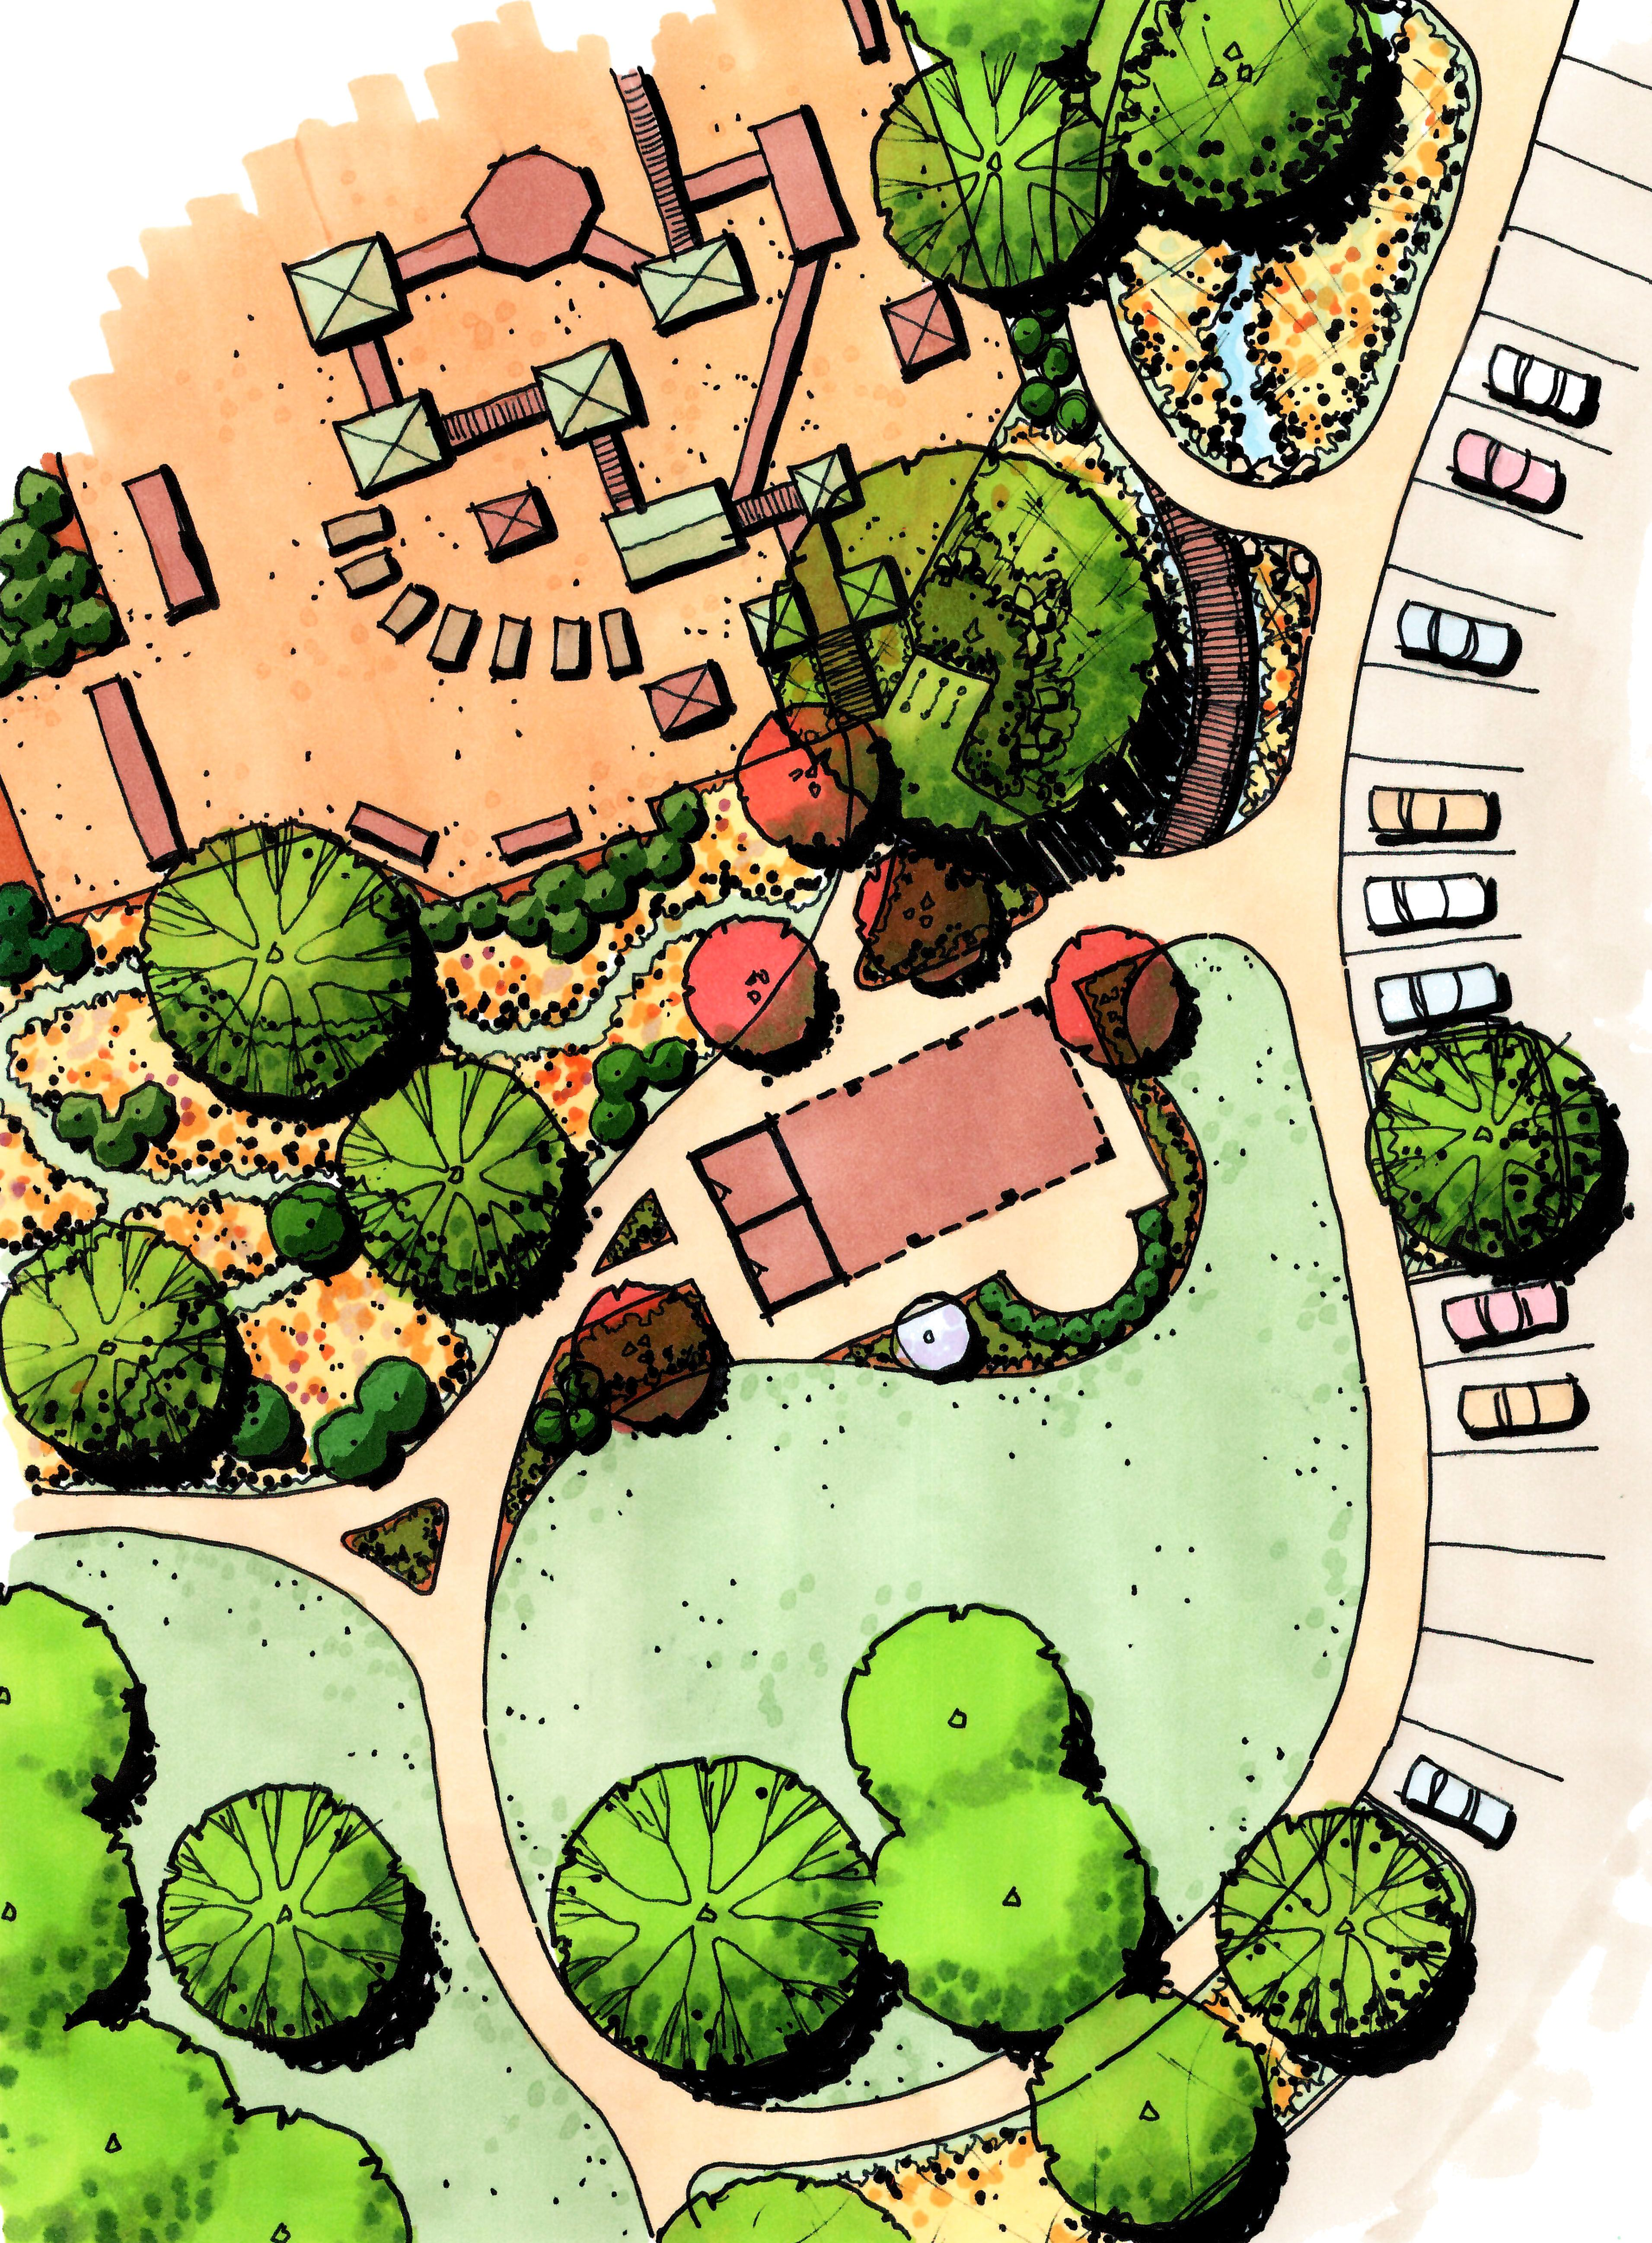 Park plan rendering nda landscape images pinterest for Landscape design site